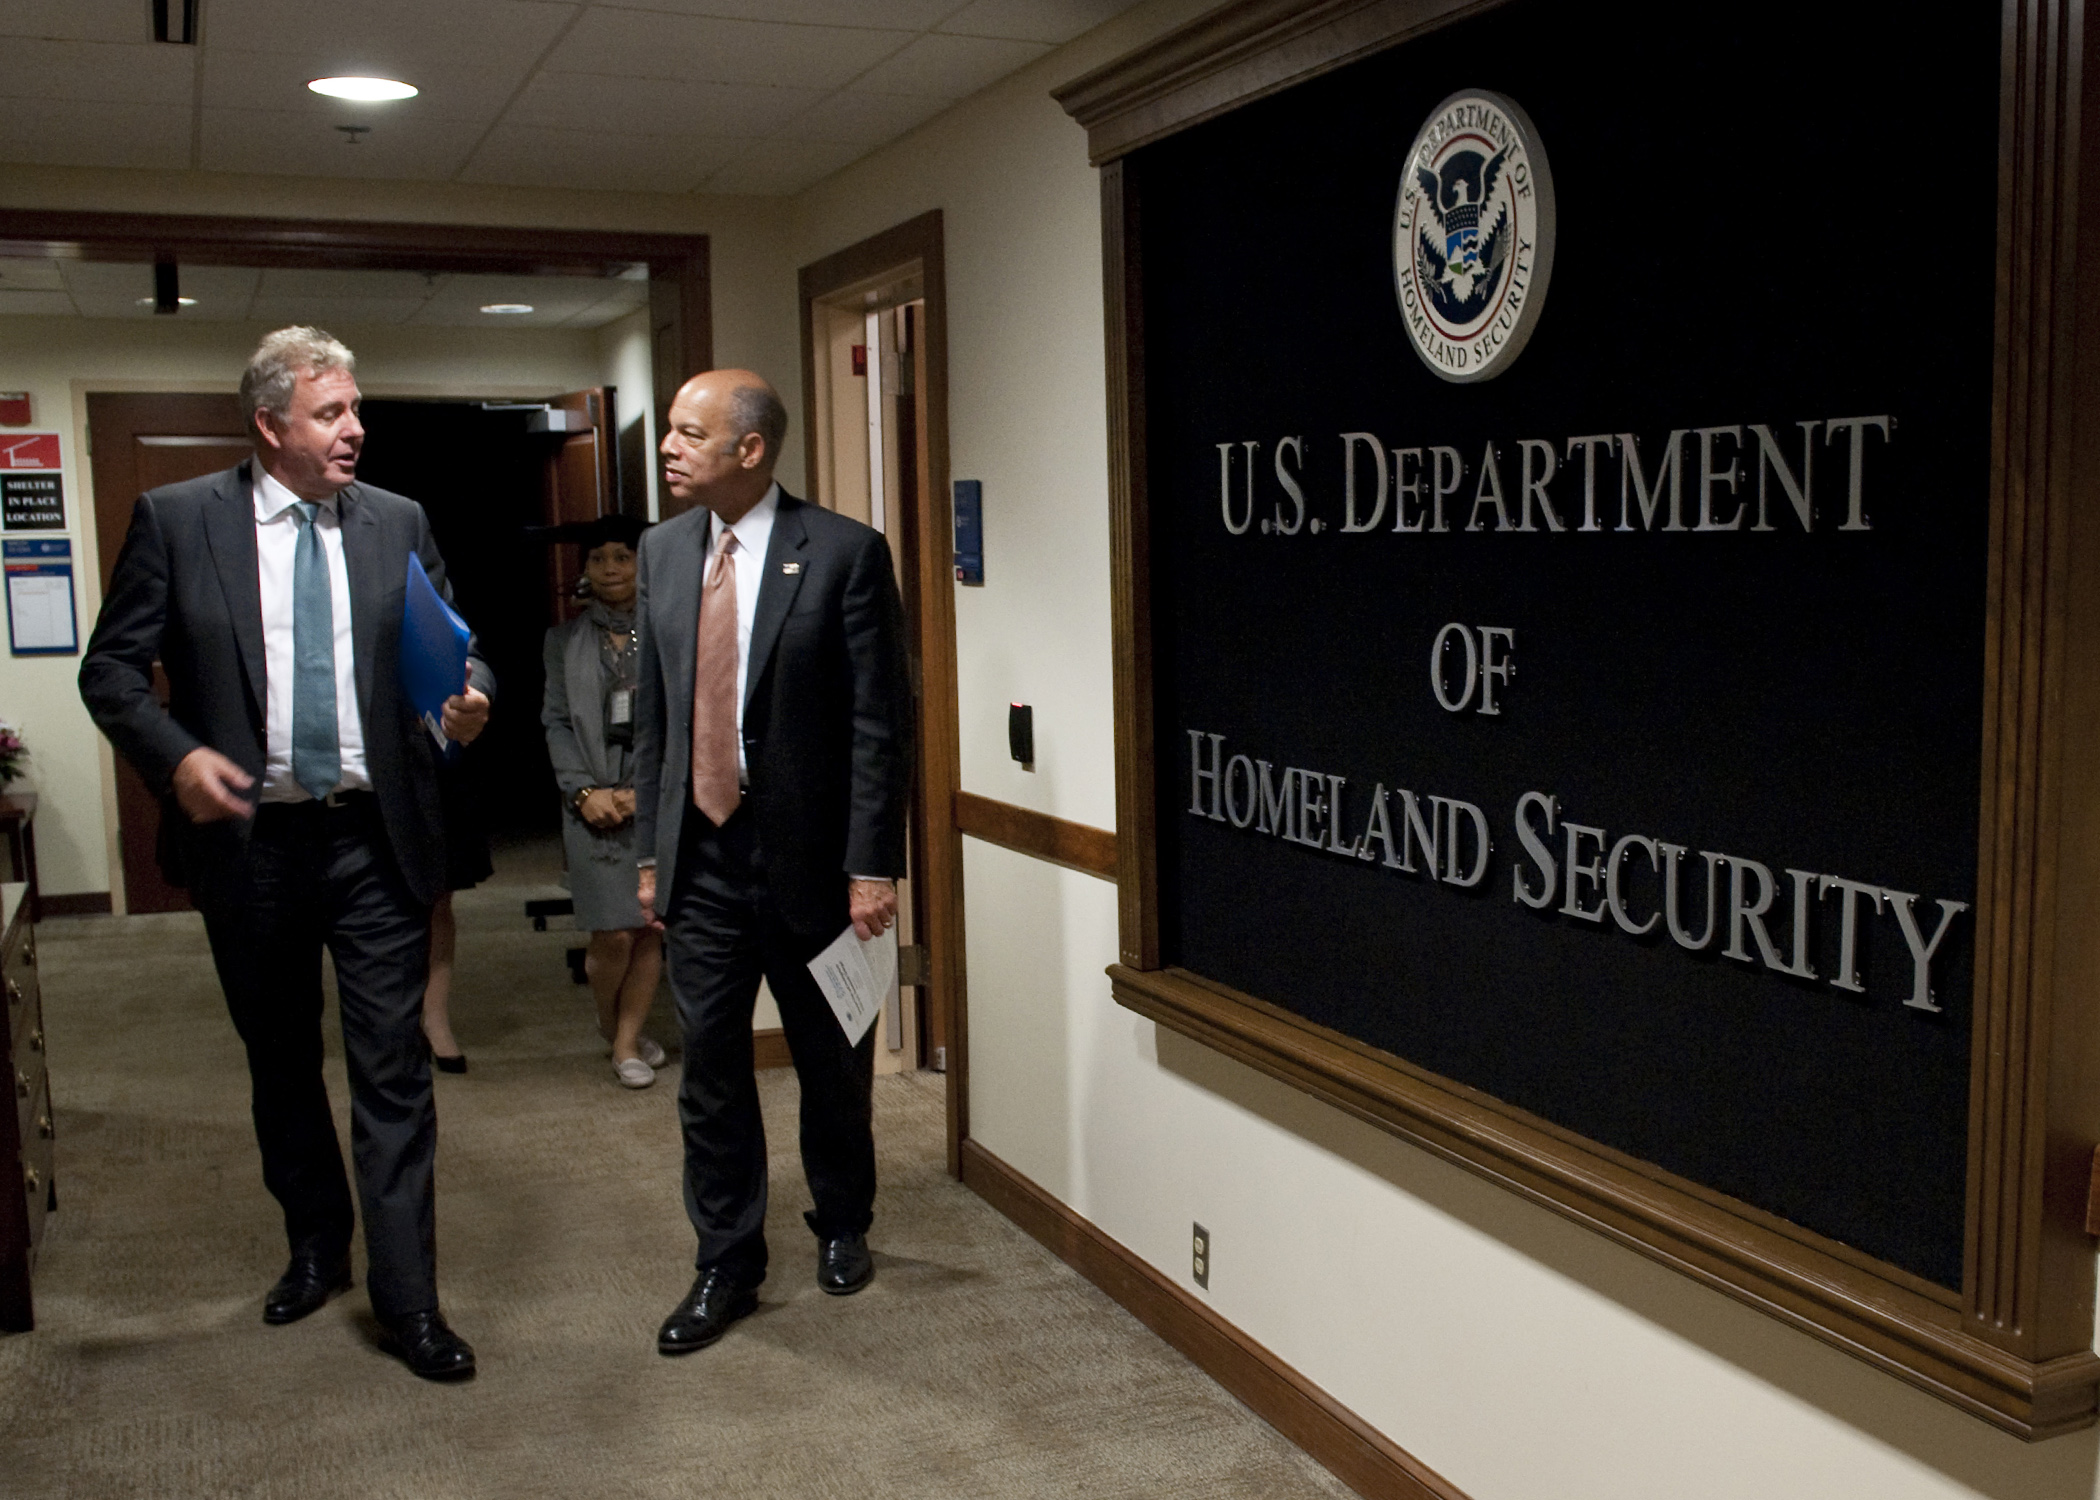 Ken Wyatt, minister for indigenous Australians and the first Aboriginal person ever to hold the role, during his visit to U.S. Department of Homeland Security in 2016. | Credit:  U.S. Department of Homeland Security